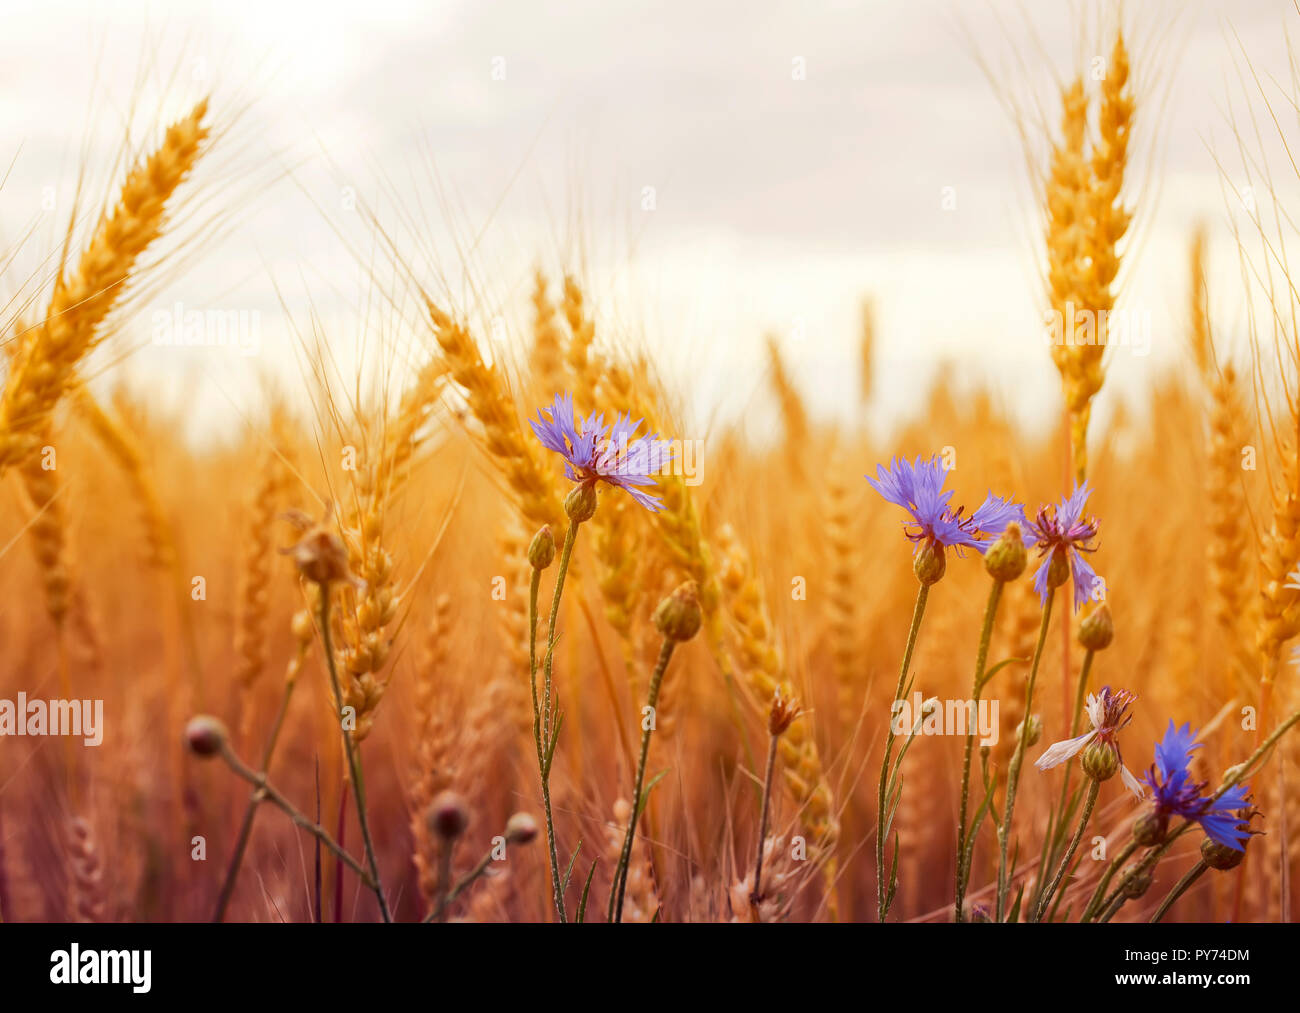 beautiful nature background with blue cornflowers wild flowers growing on a field with ripe Golden ears of corn, and the grains of wheat on a Sunny da - Stock Image